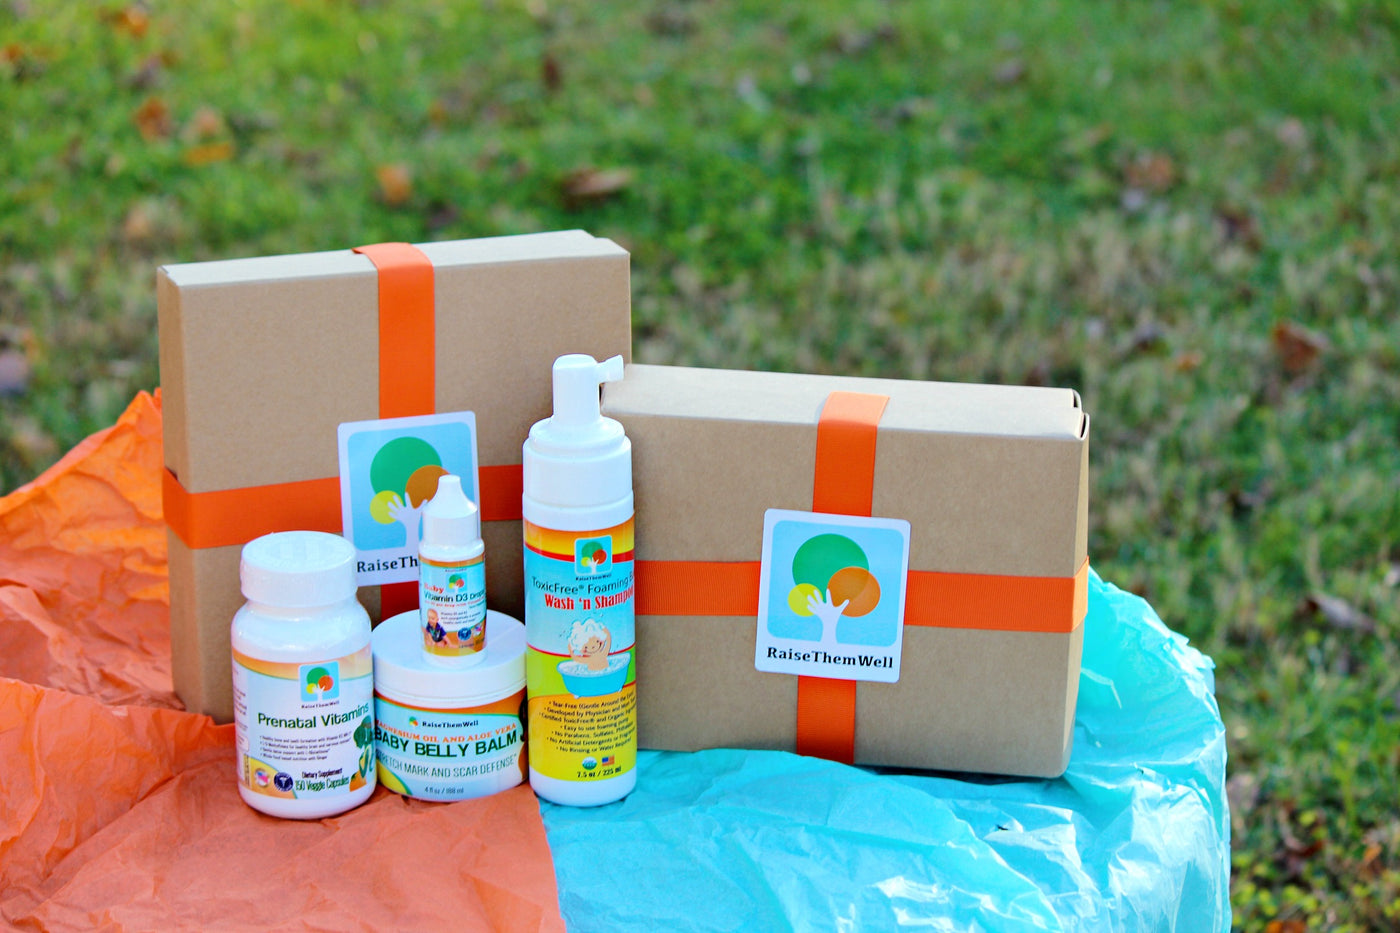 Baby Shower Gift Box: Belly Balm, Vitamin D, Baby Wash, Prenatal